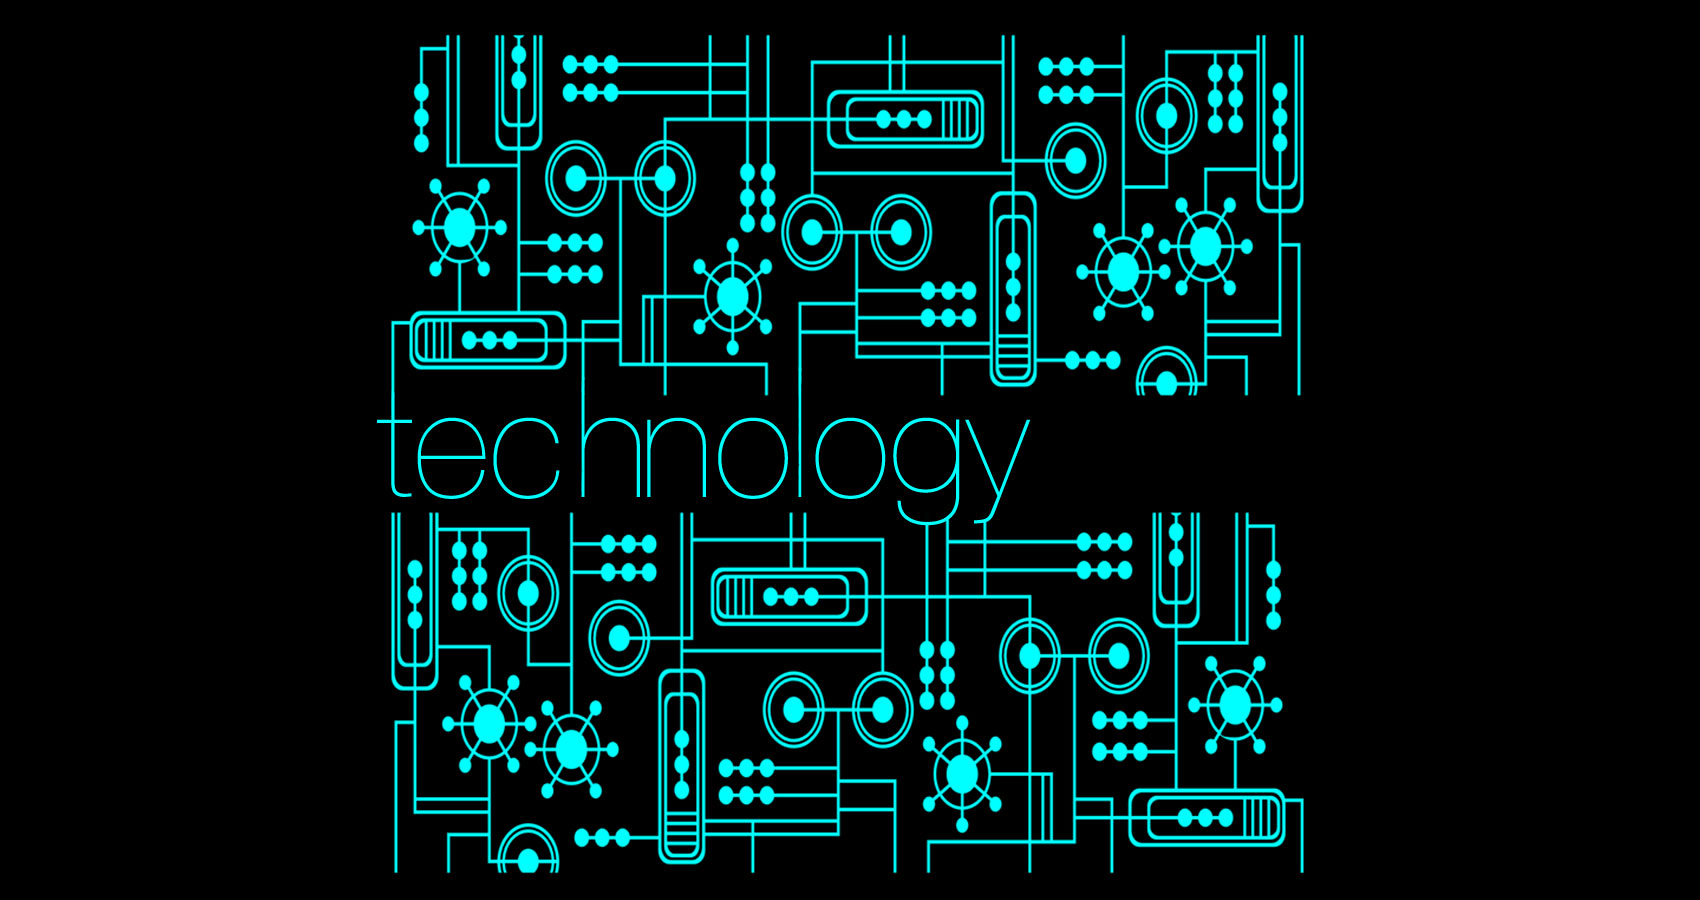 Technology written by Brian Wayne Smith at Spillwords.com